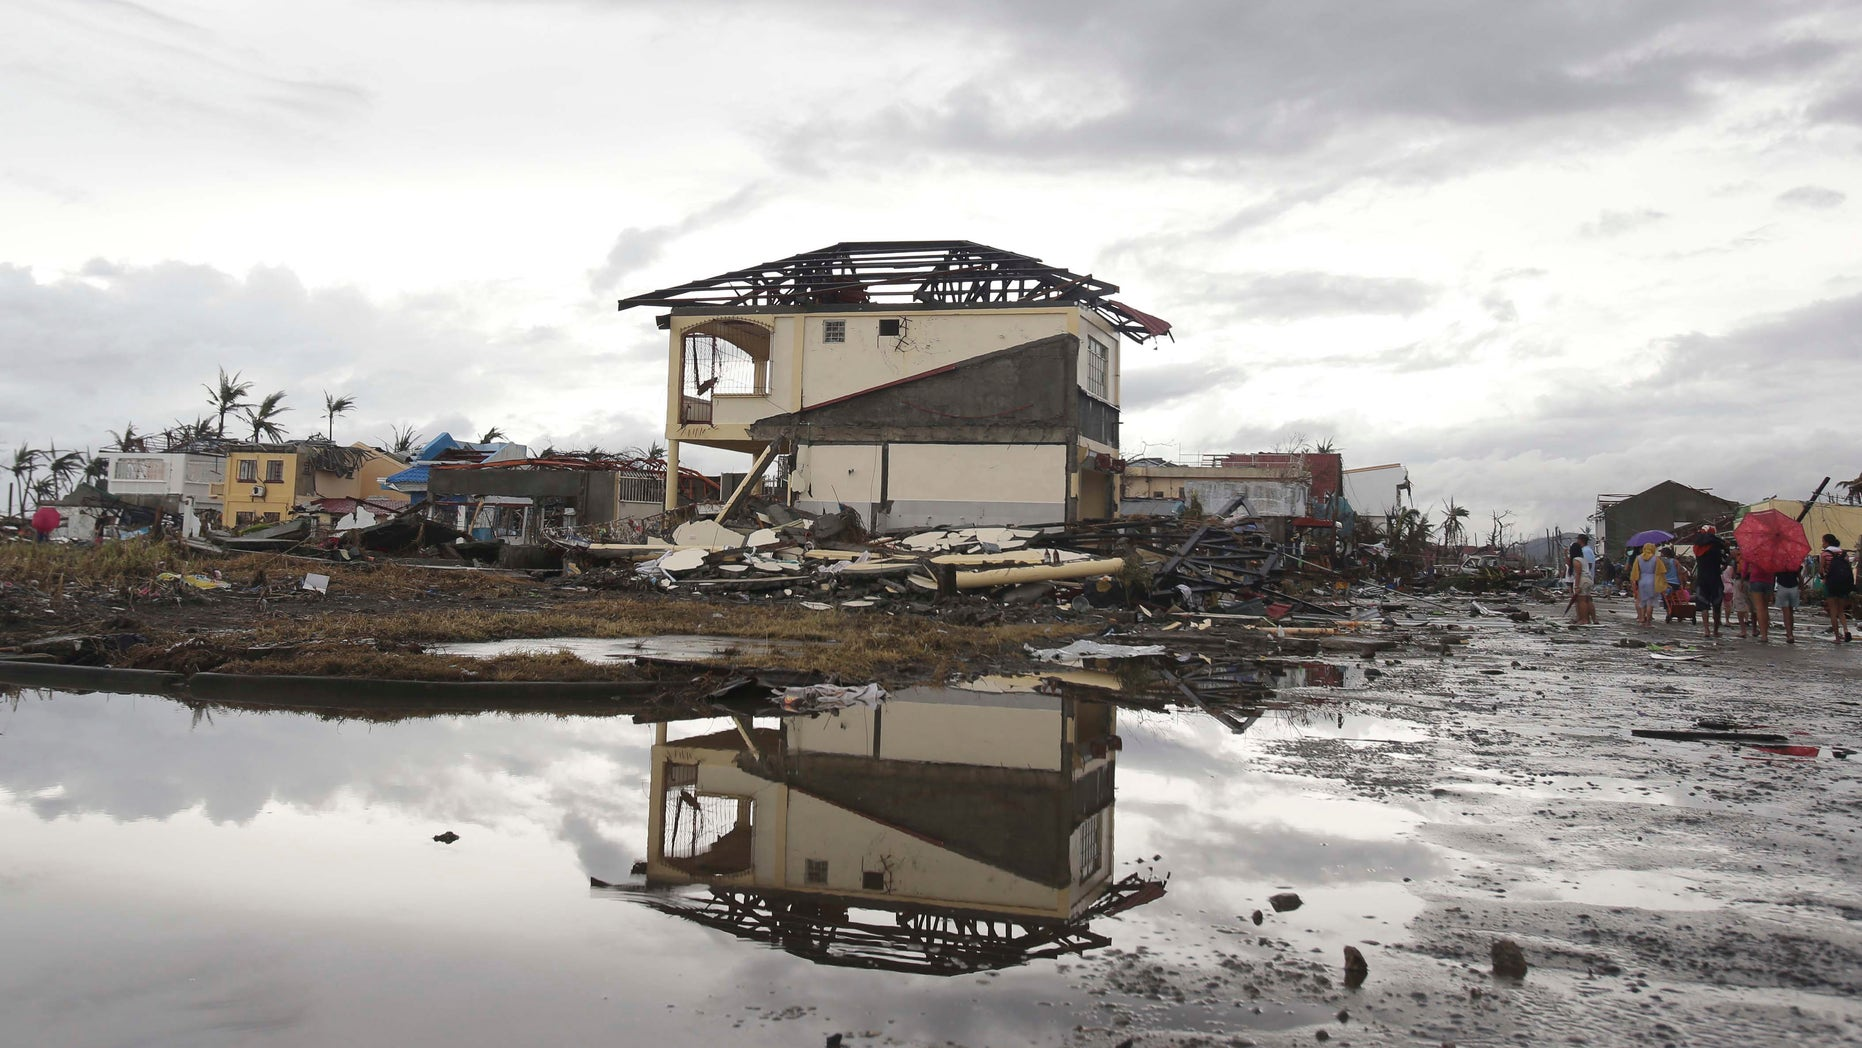 Nov. 12, 2013: Survivors walk past damaged houses at typhoon ravaged Tacloban city, Leyte province, central Philippines. The Philippines emerged as a rising economic star in Asia but the trail of death and destruction left by Typhoon Haiyan has highlighted a key weakness: fragile infrastructure resulting from decades of neglect and corruption.